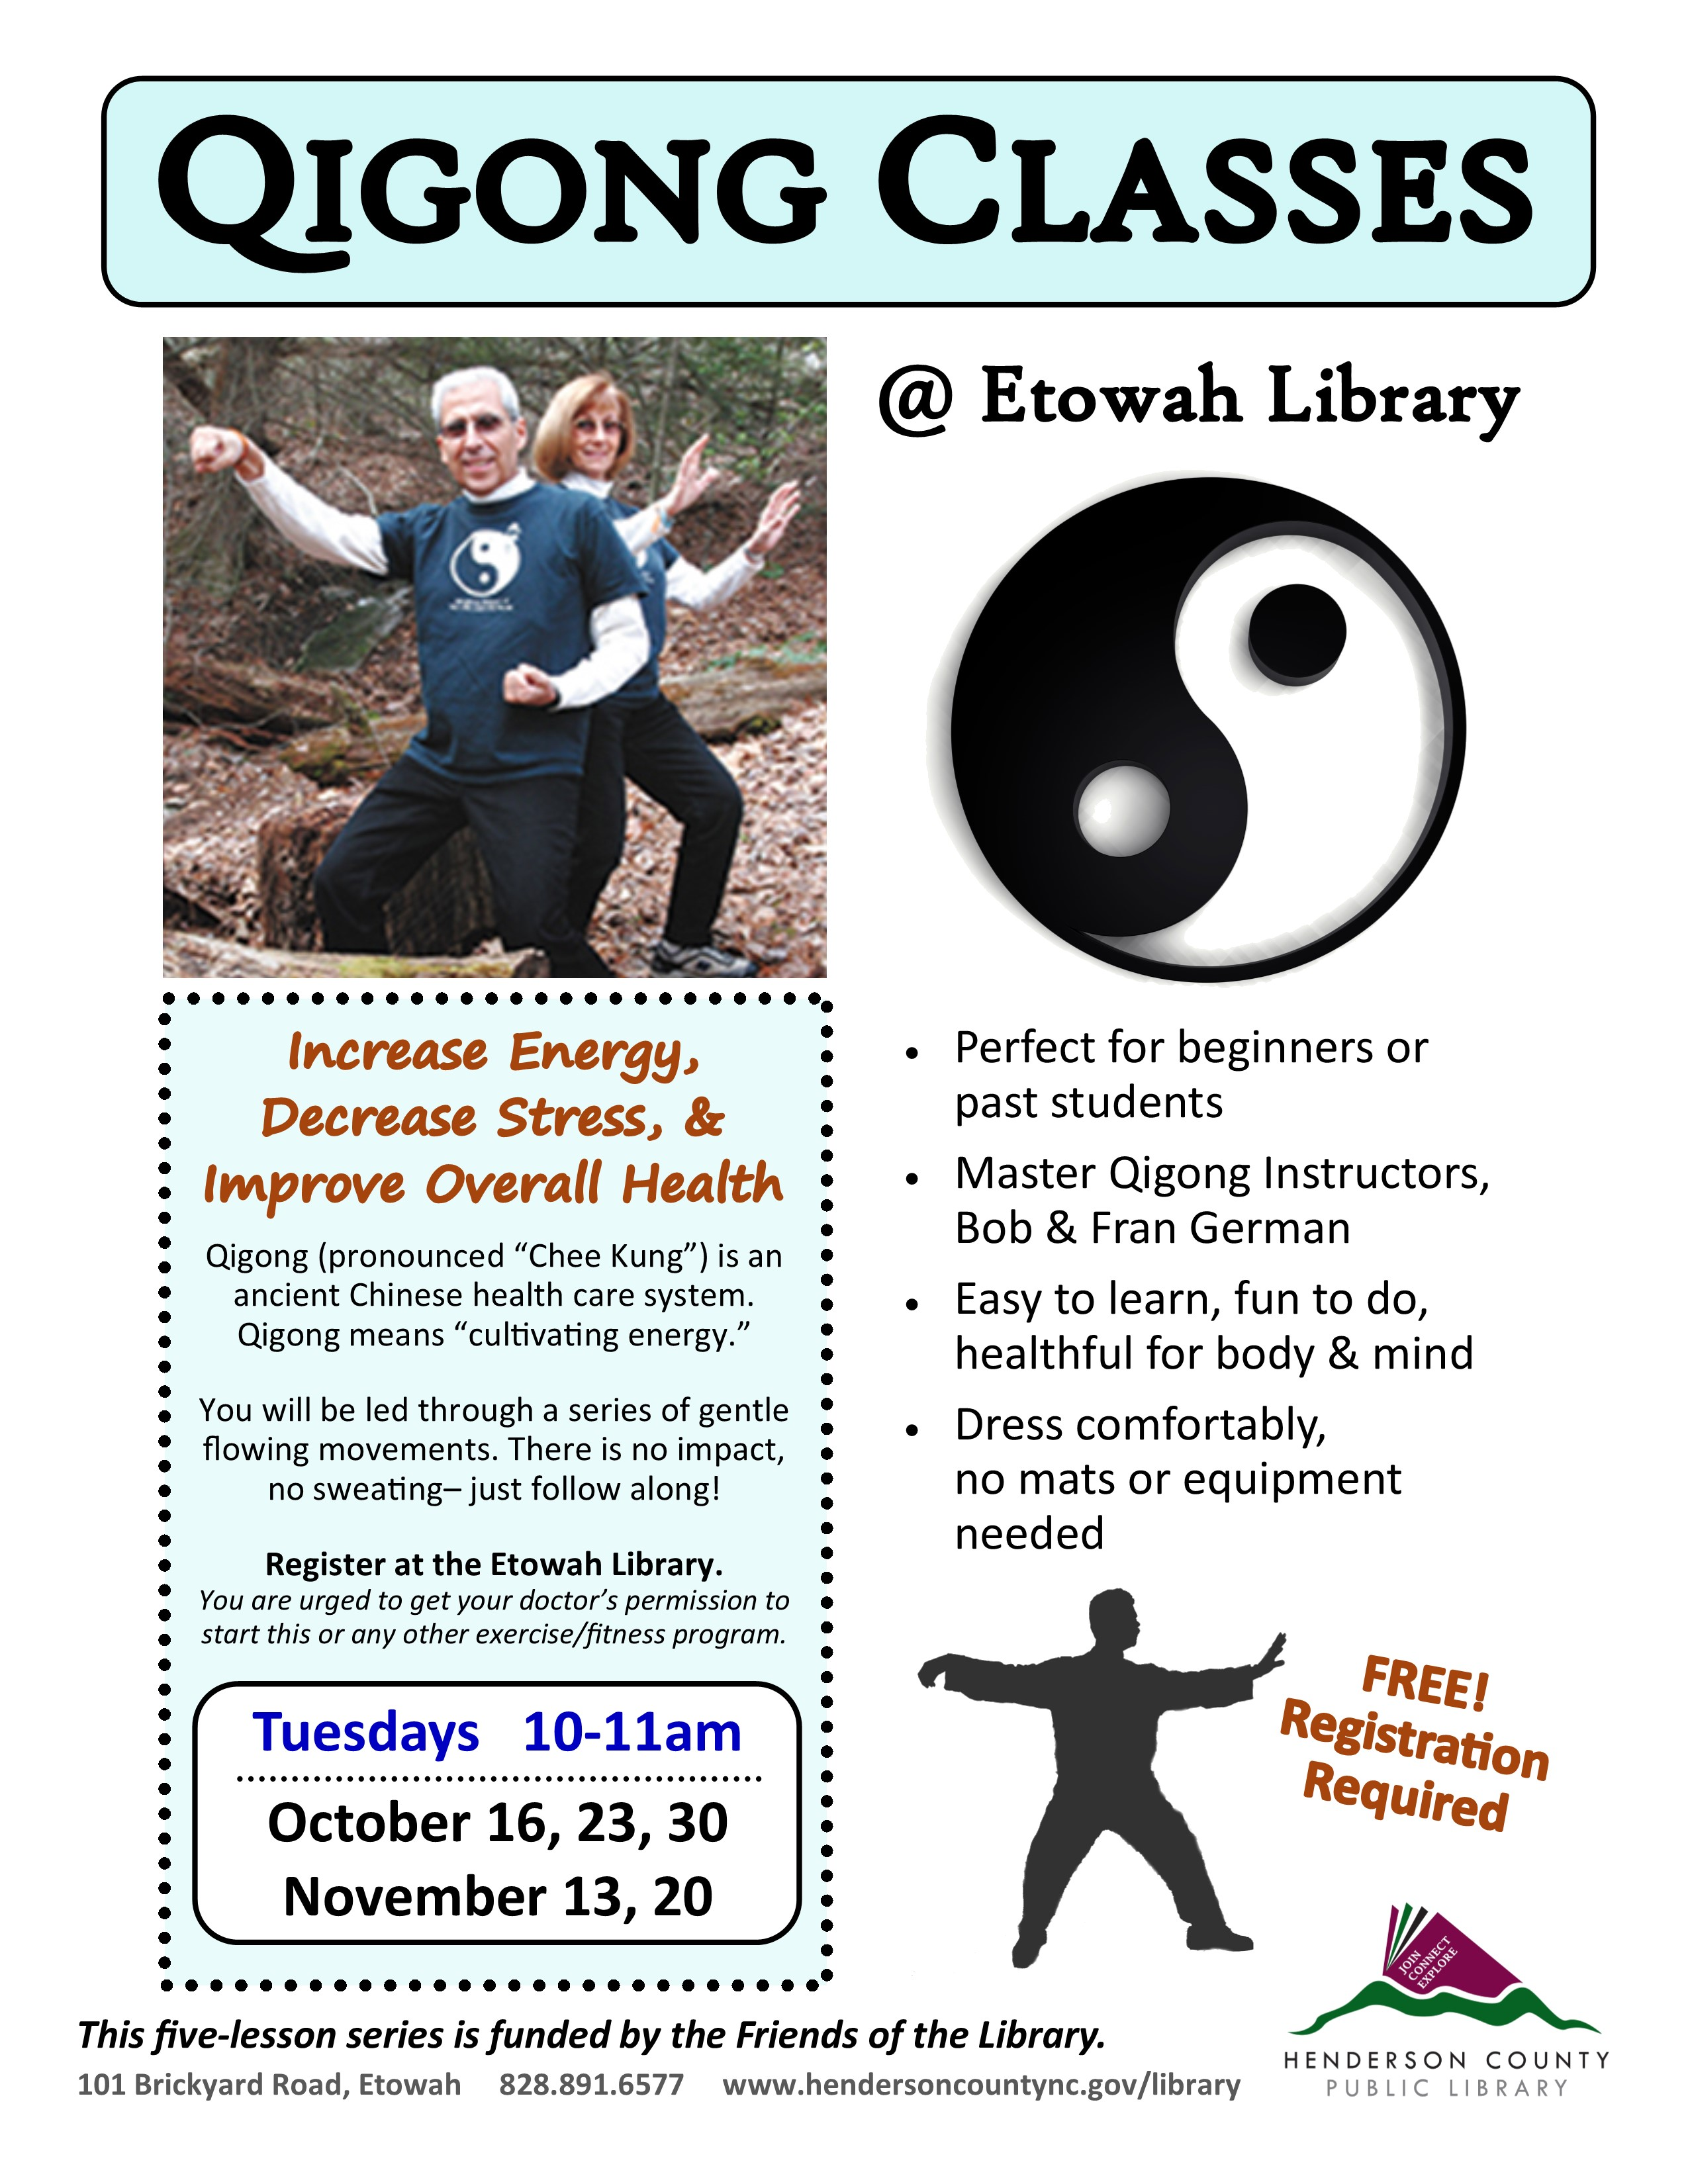 Qigong Classes at the Etowah Library